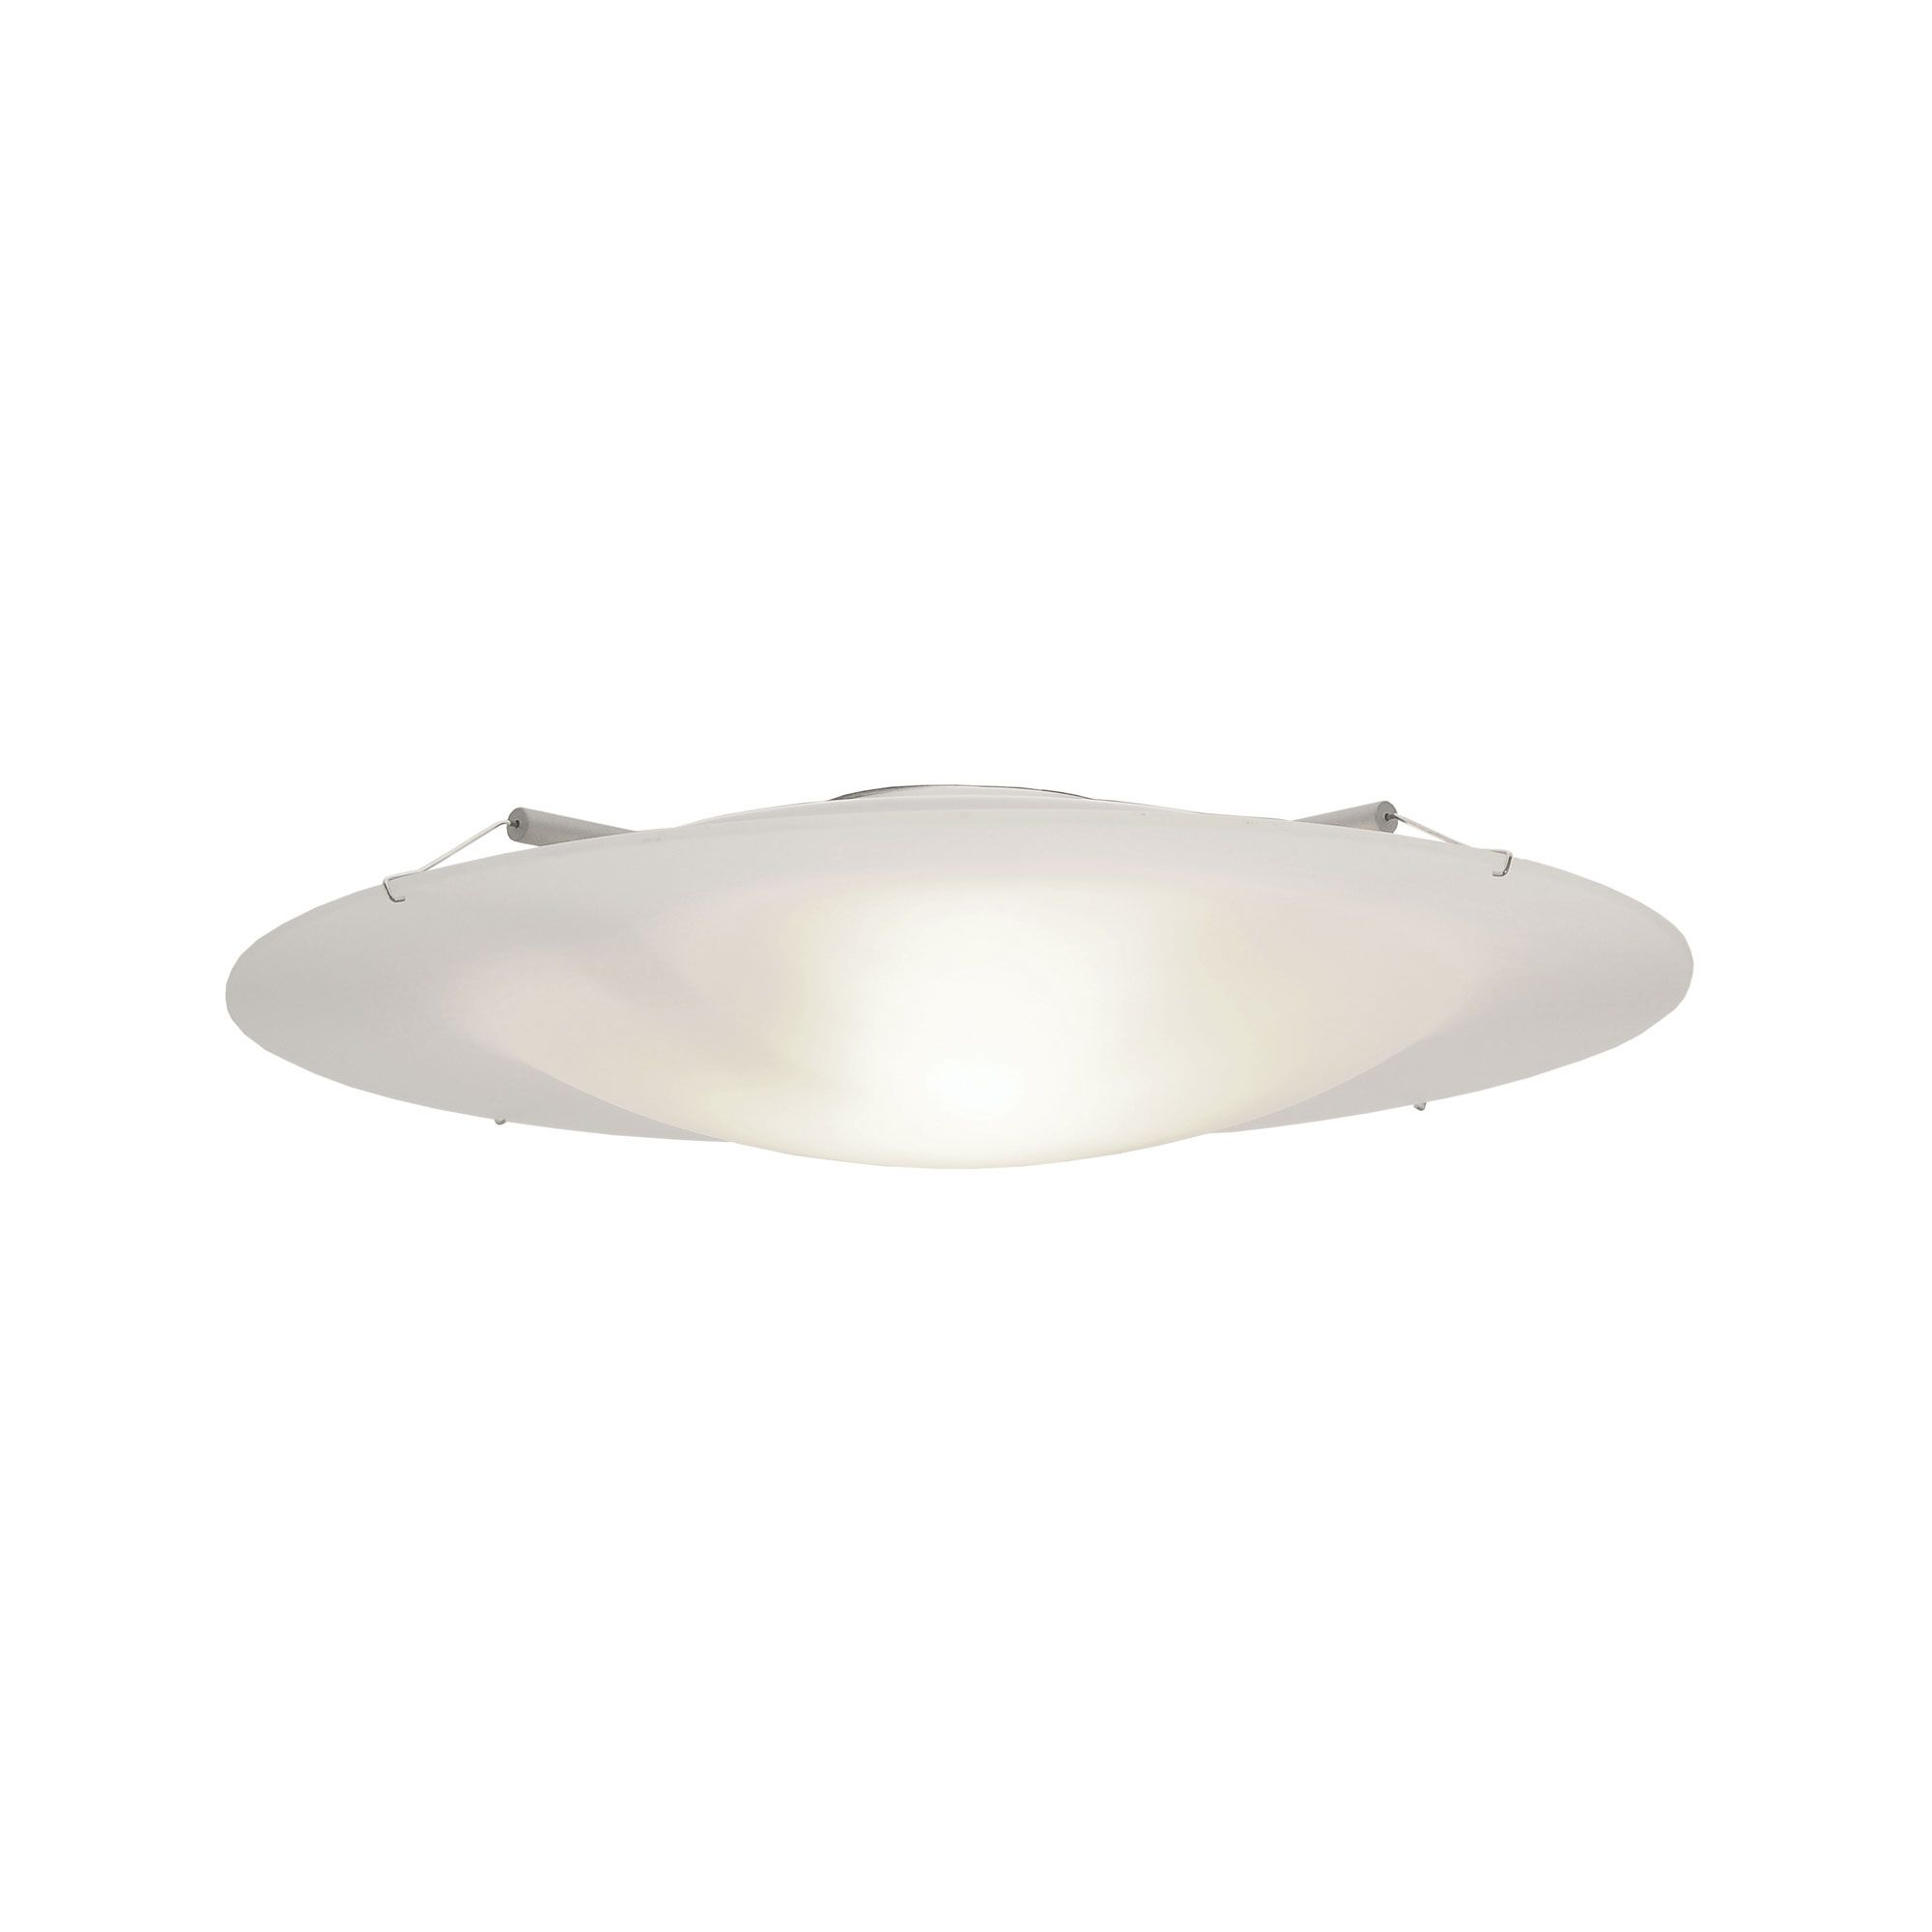 Vanilla Sky 14 Round Halogen Ceiling Light Features A Molded White Glass Diffuser Includes One Ceiling Lights House Ceiling Lights Contemporary Ceiling Light